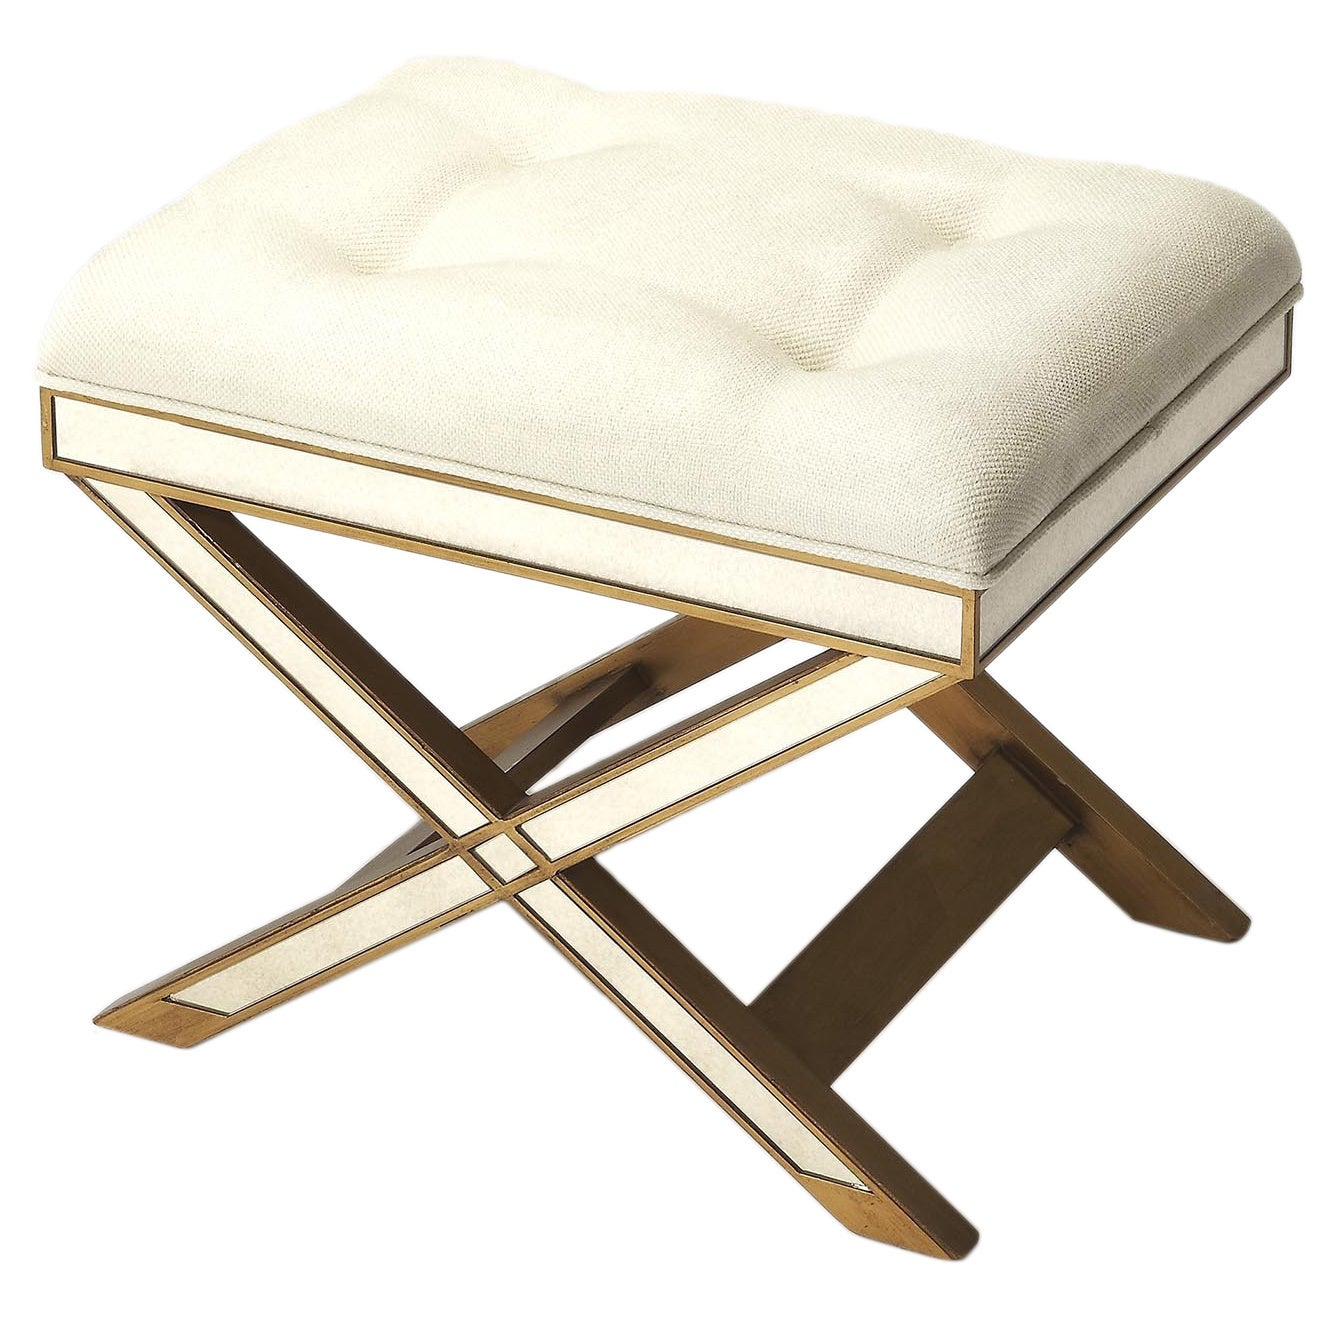 Butler Marlo Mirrored Gold/Ivory Vanity Stool (Gold) (MDF)